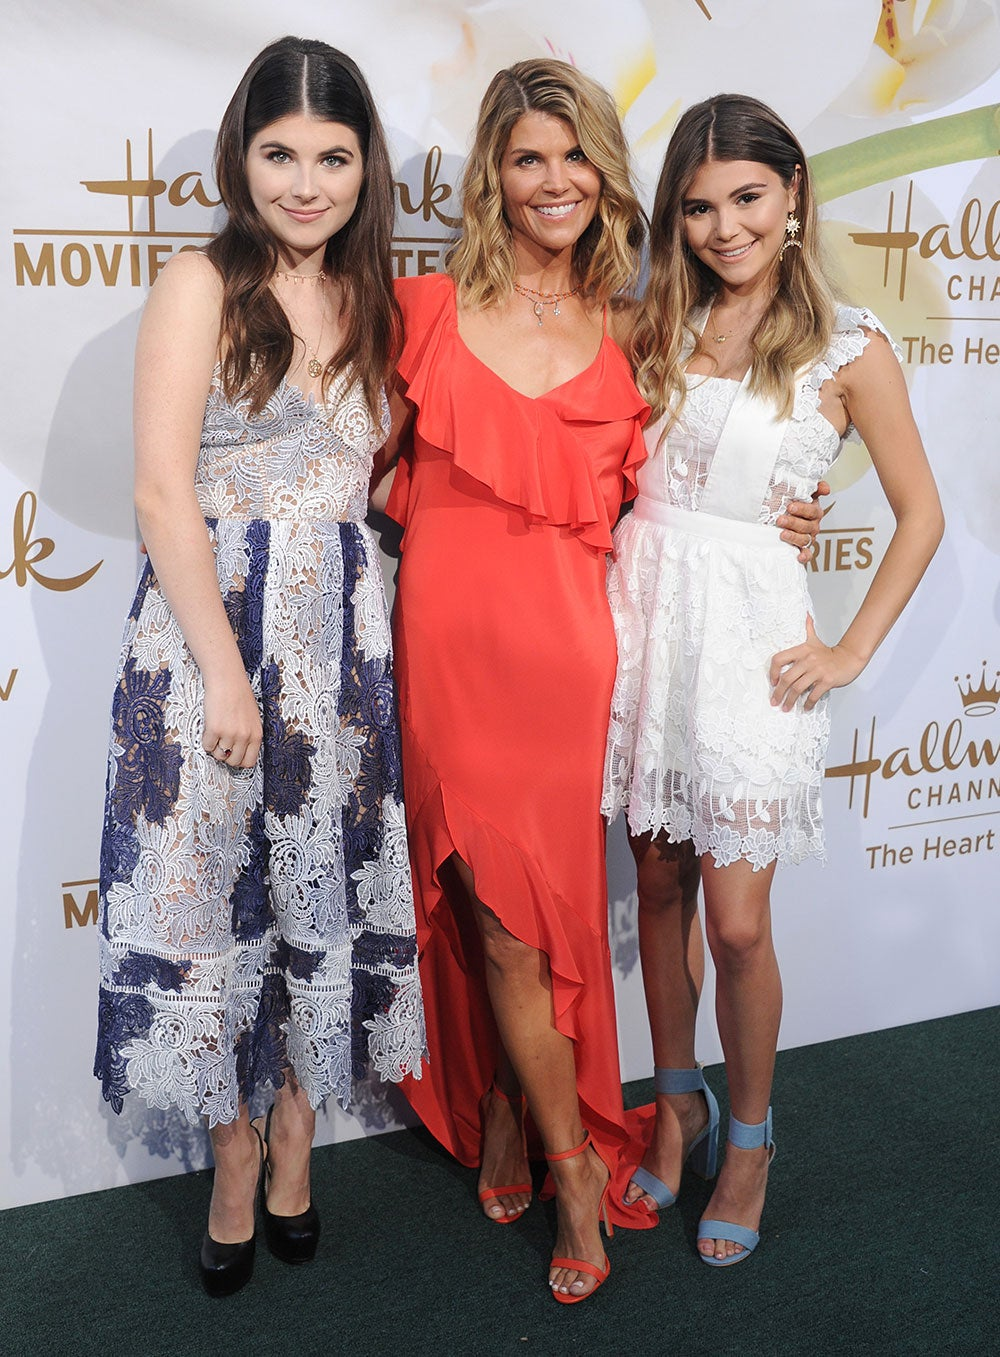 Lori Loughlin Hits The Red Carpet With Look Alike